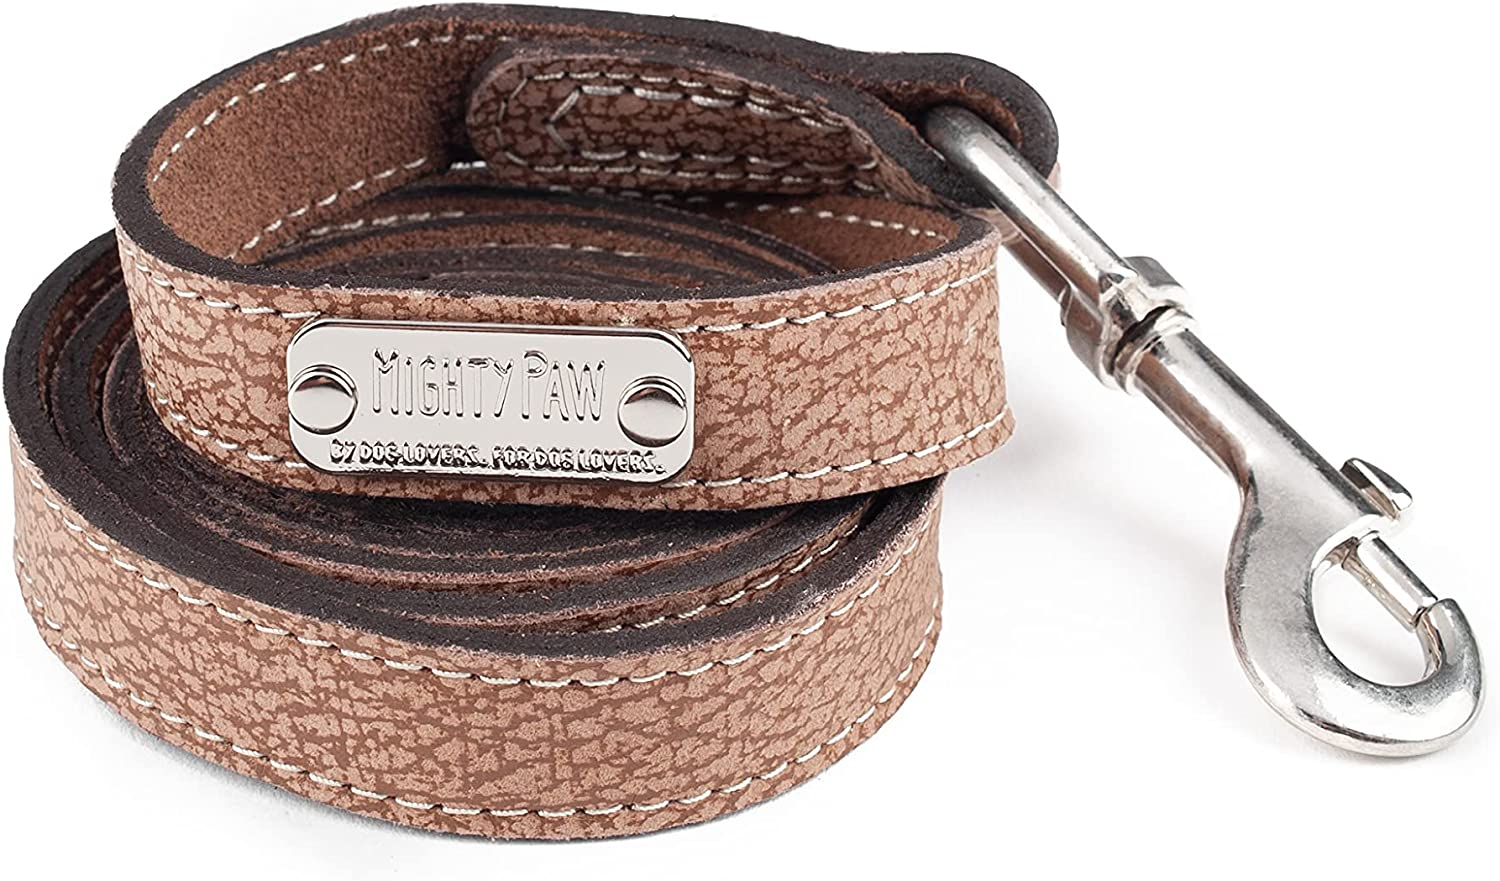 Mighty Paw Leather Dog Leash | 5 ft Leash Super Soft Distressed Real Genuine Leather- Premium Quality, Modern Stylish Lead. Perfect for Small, Medium and Large Pets : Pet Supplies